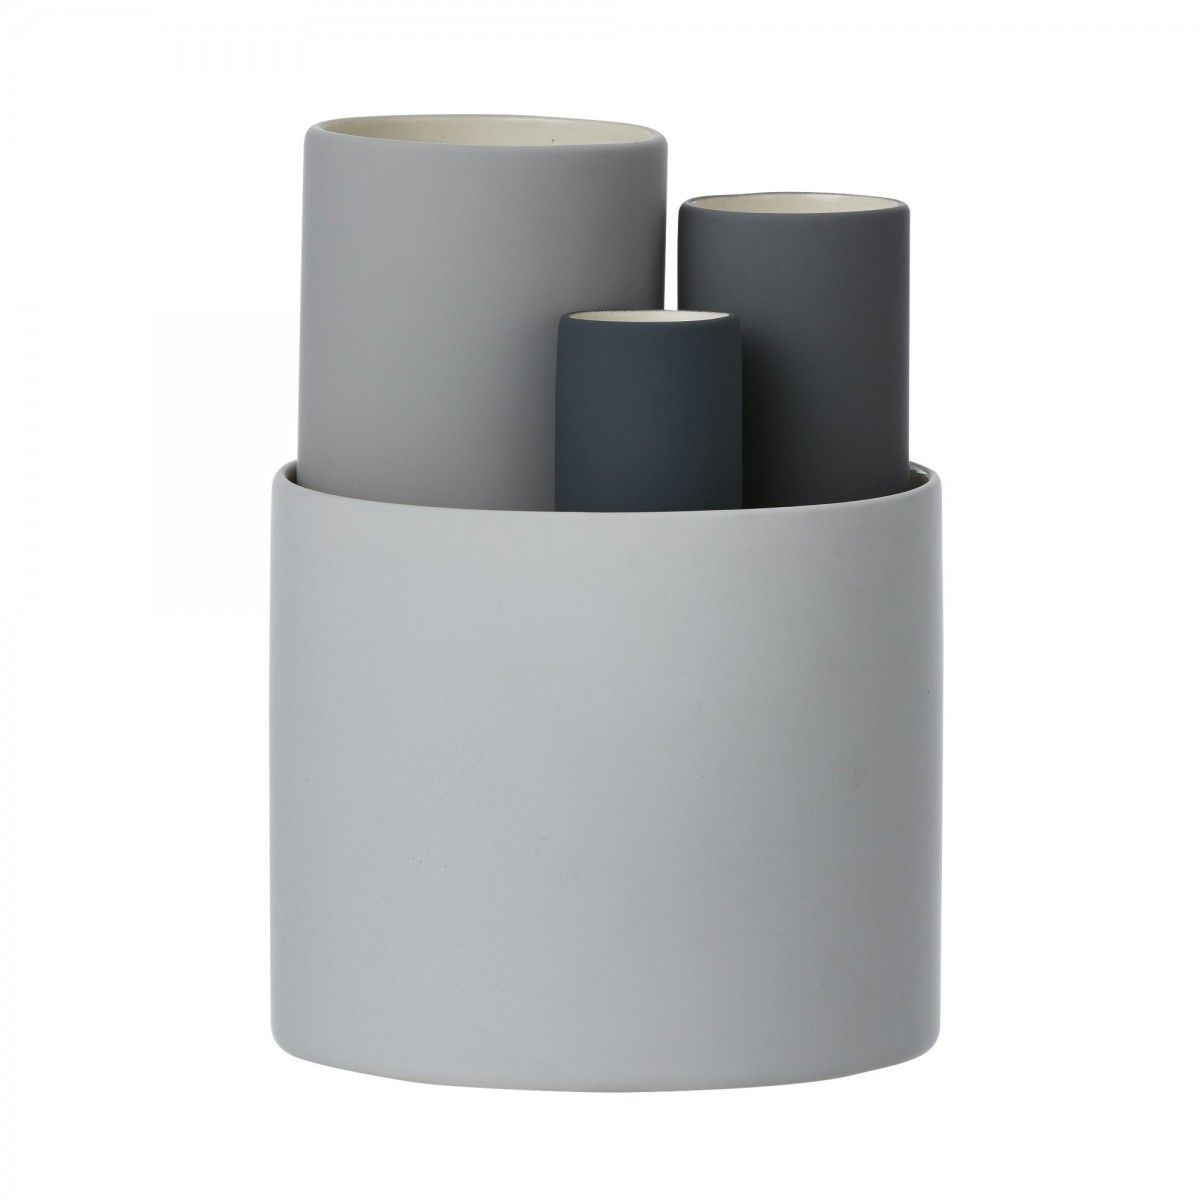 dark gray vase of pin by zui chen on aec28a ac29bc2be pinterest with gray table vases products